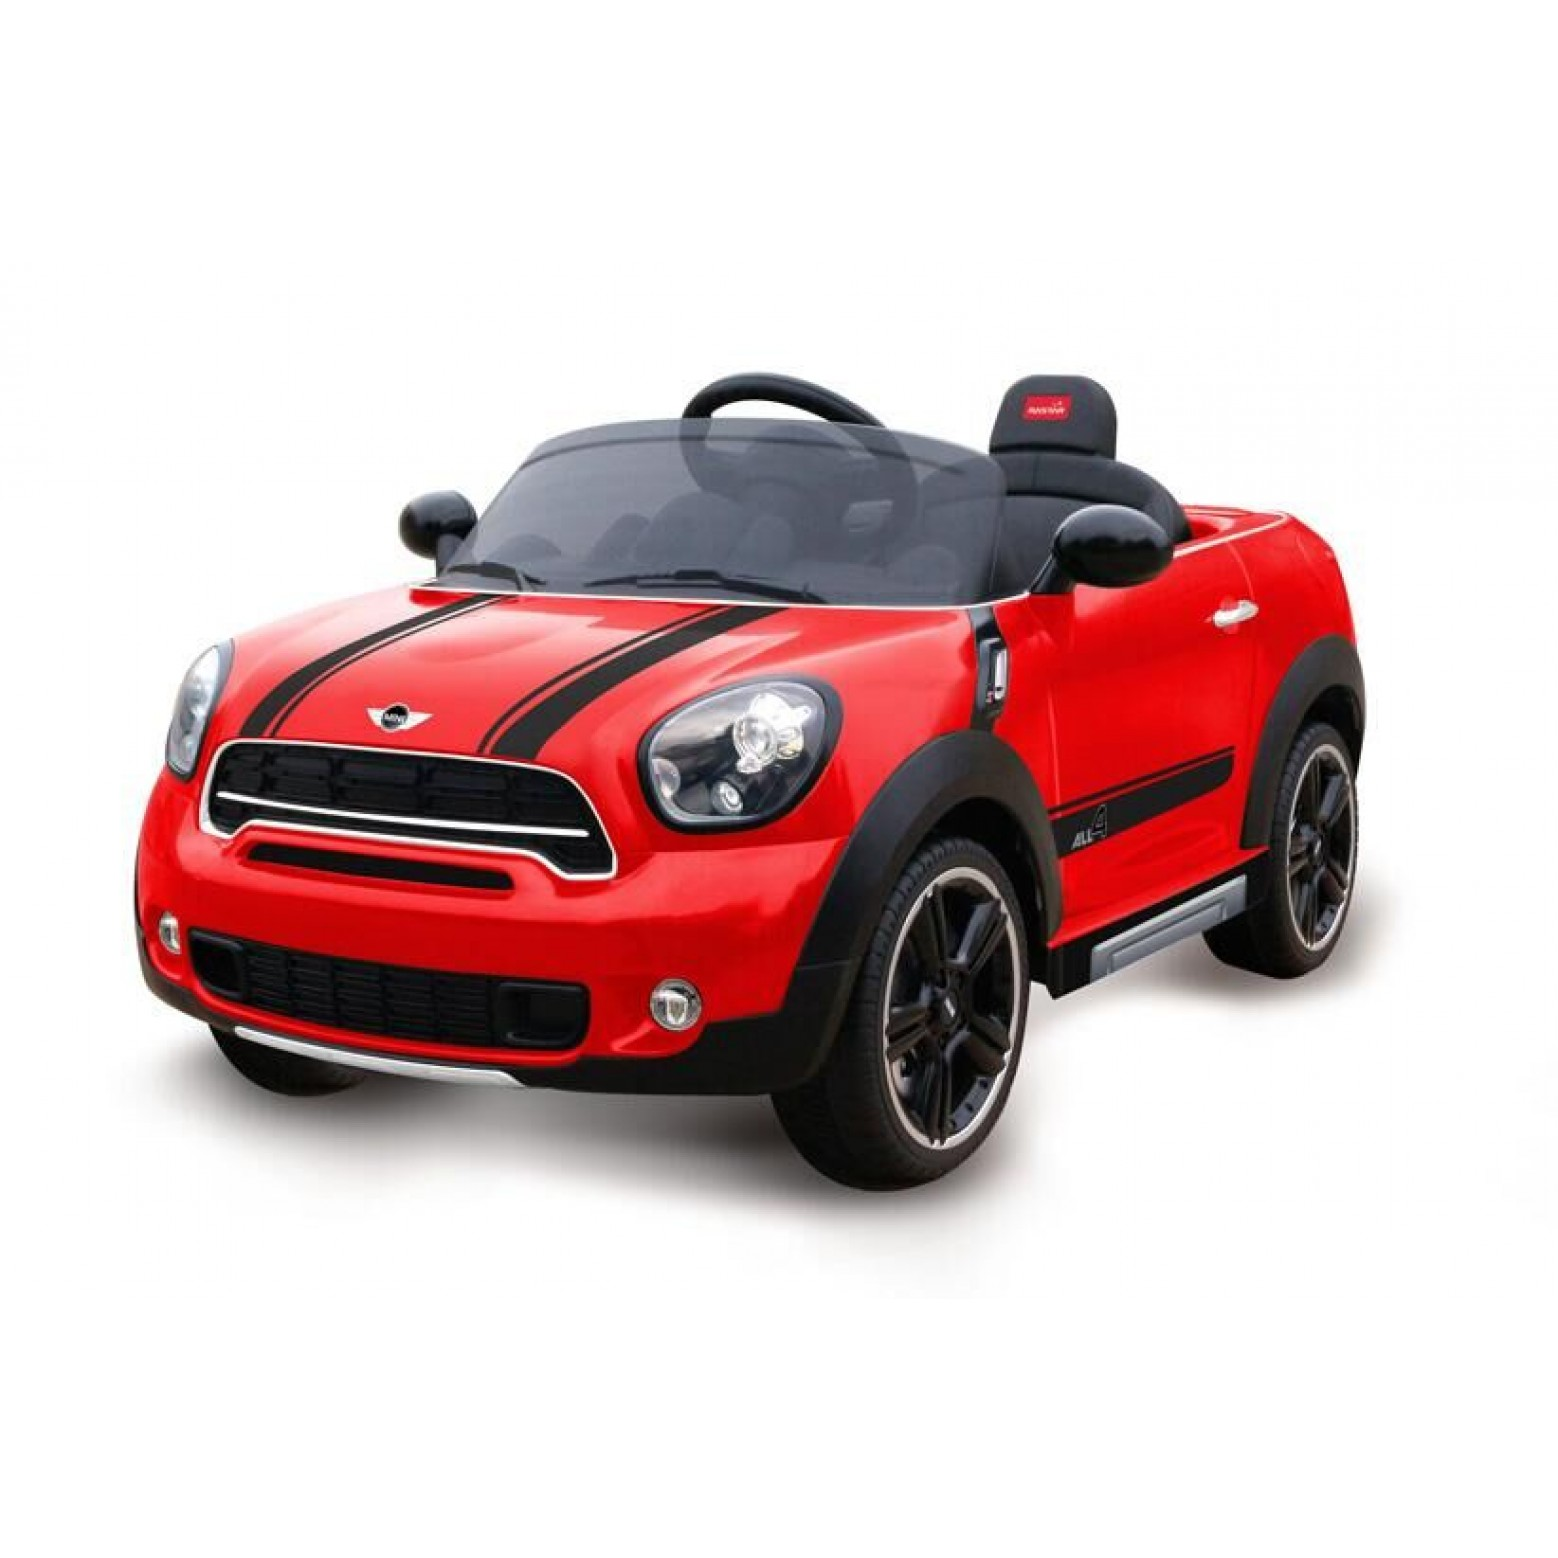 Mini Countryman Accu Auto Rood